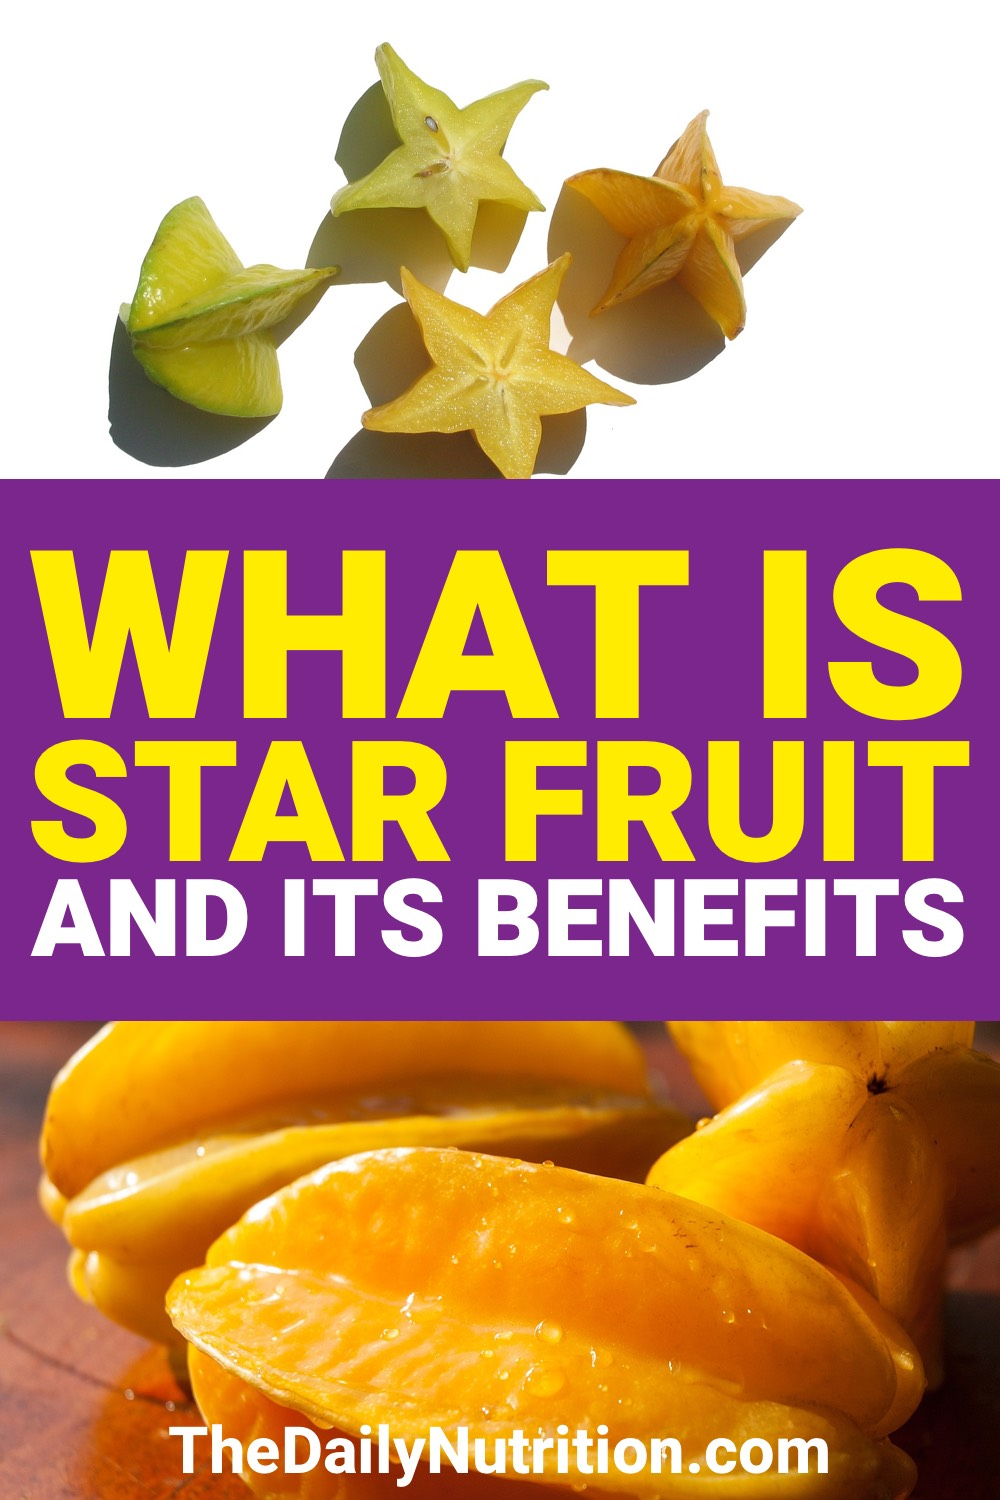 When you have star fruit, you're going to get benefits you may have never known about. Find out the star fruit benefits here.